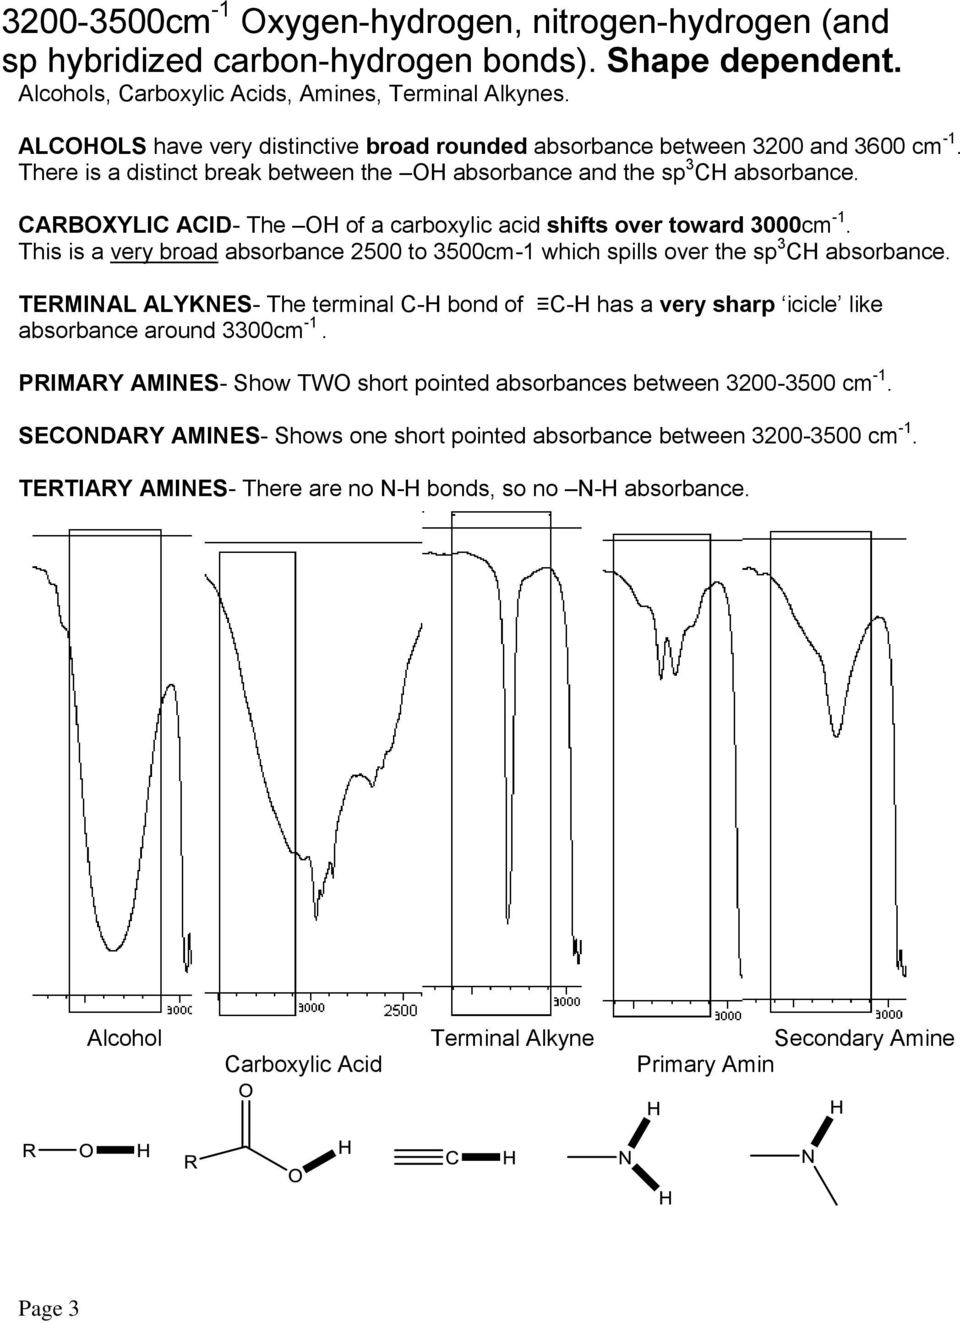 CARBOXYLIC ACID- The OH of a carboxylic acid shifts over toward 3000cm -1. This is a very broad absorbance 2500 to 3500cm-1 which spills over the sp 3 CH absorbance.